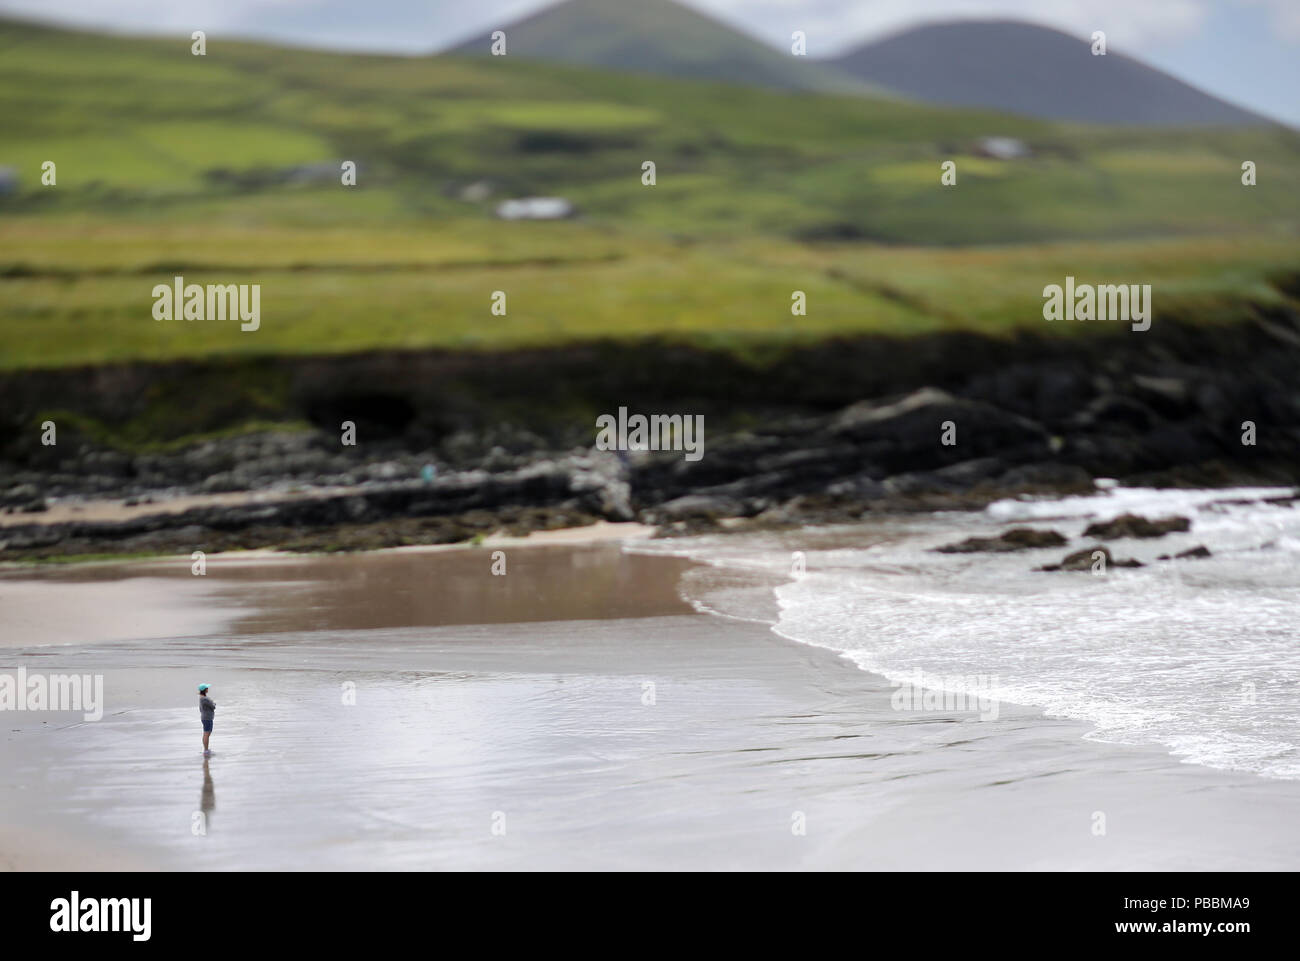 ireland vacation ideas stock photos & ireland vacation ideas stock